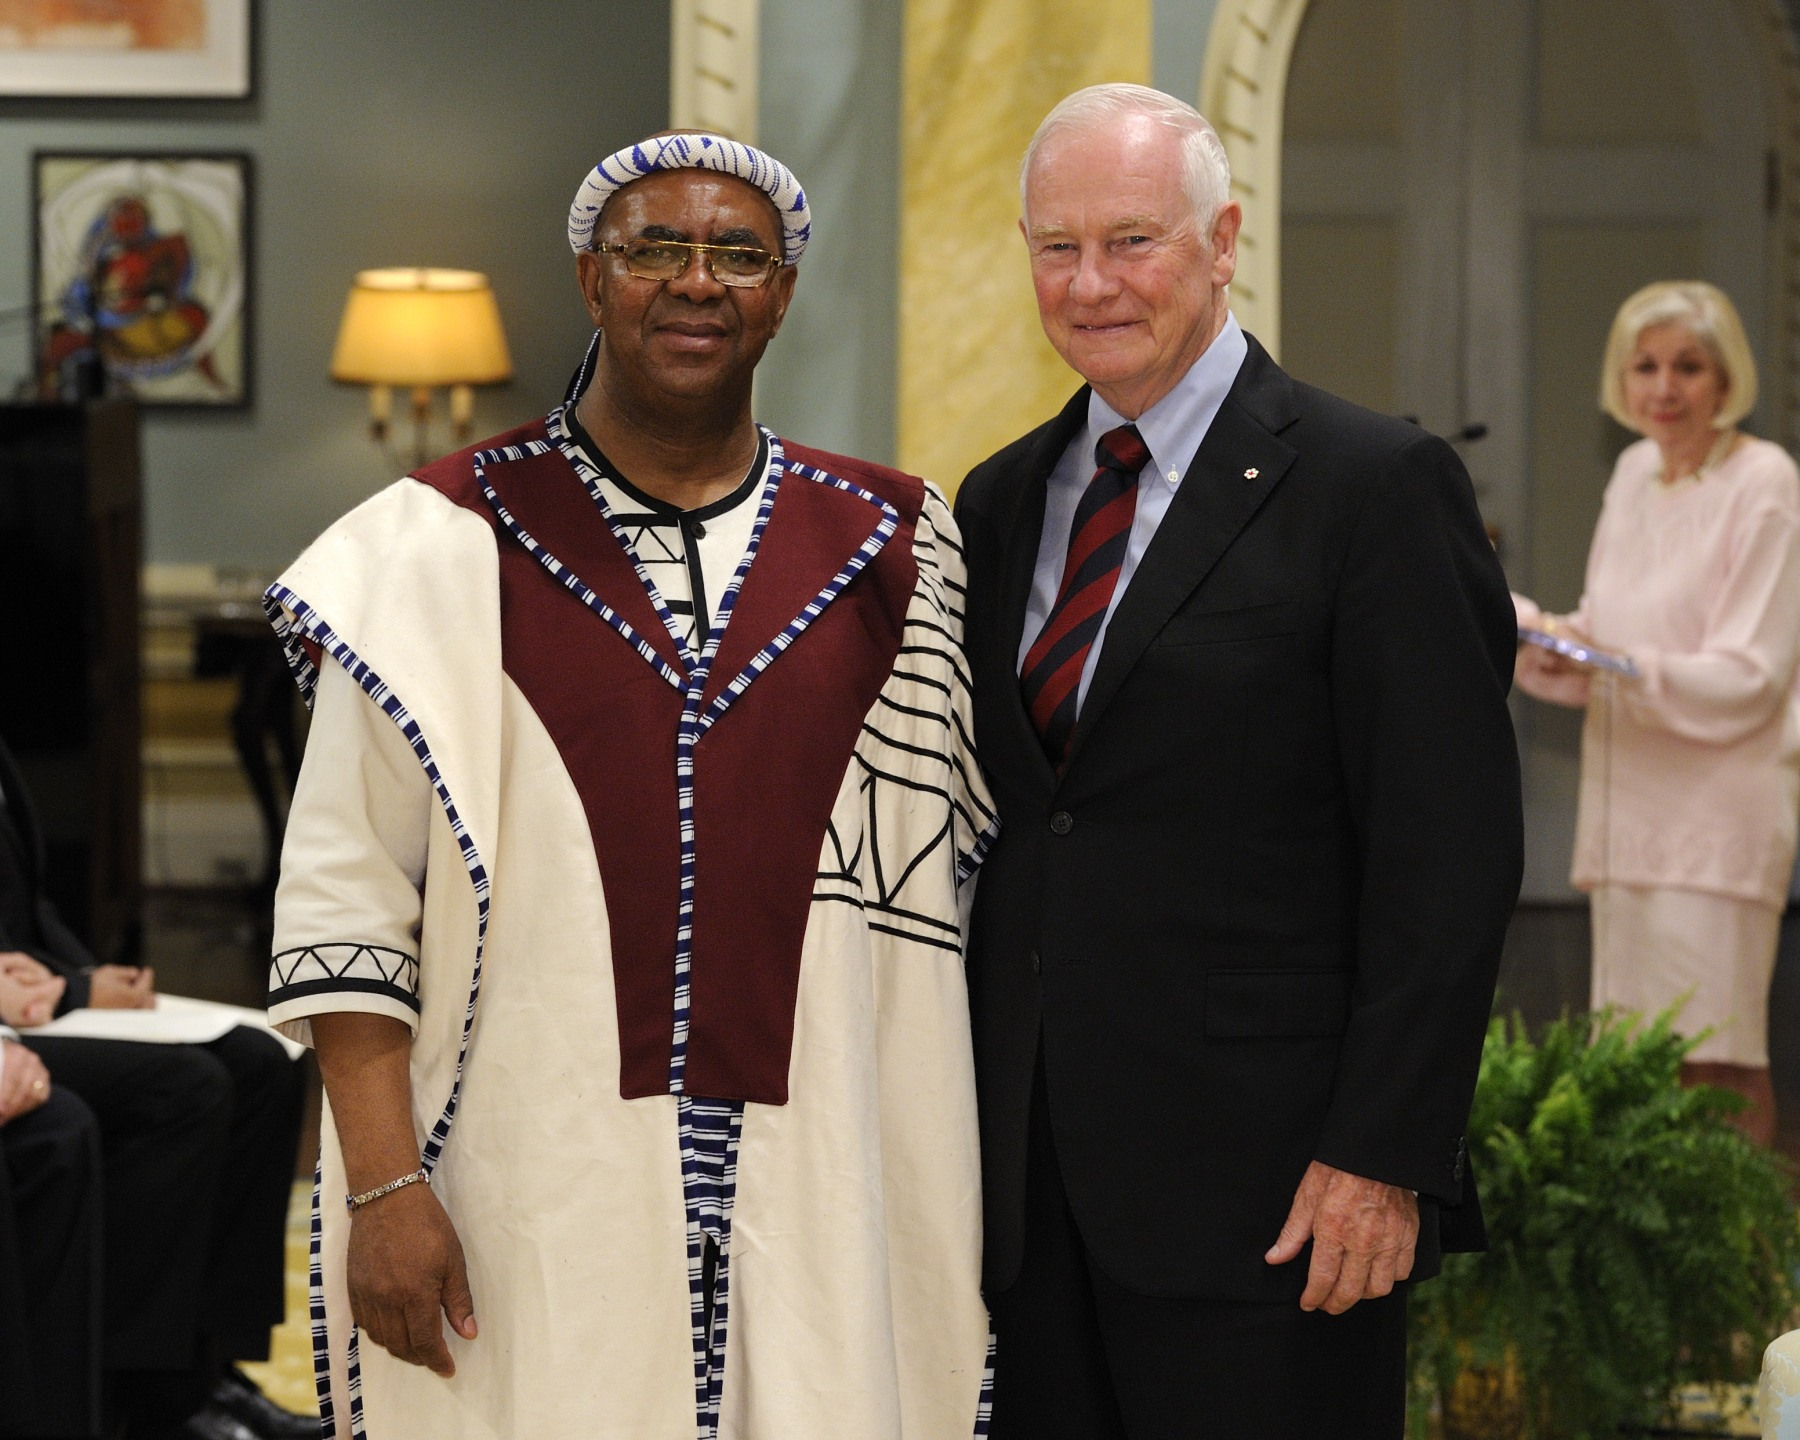 The Governor General received the credentials of His Excellency Membathisi Mphumzi Shepherd Mdladlana, High Commissioner of the Republic of South Africa.